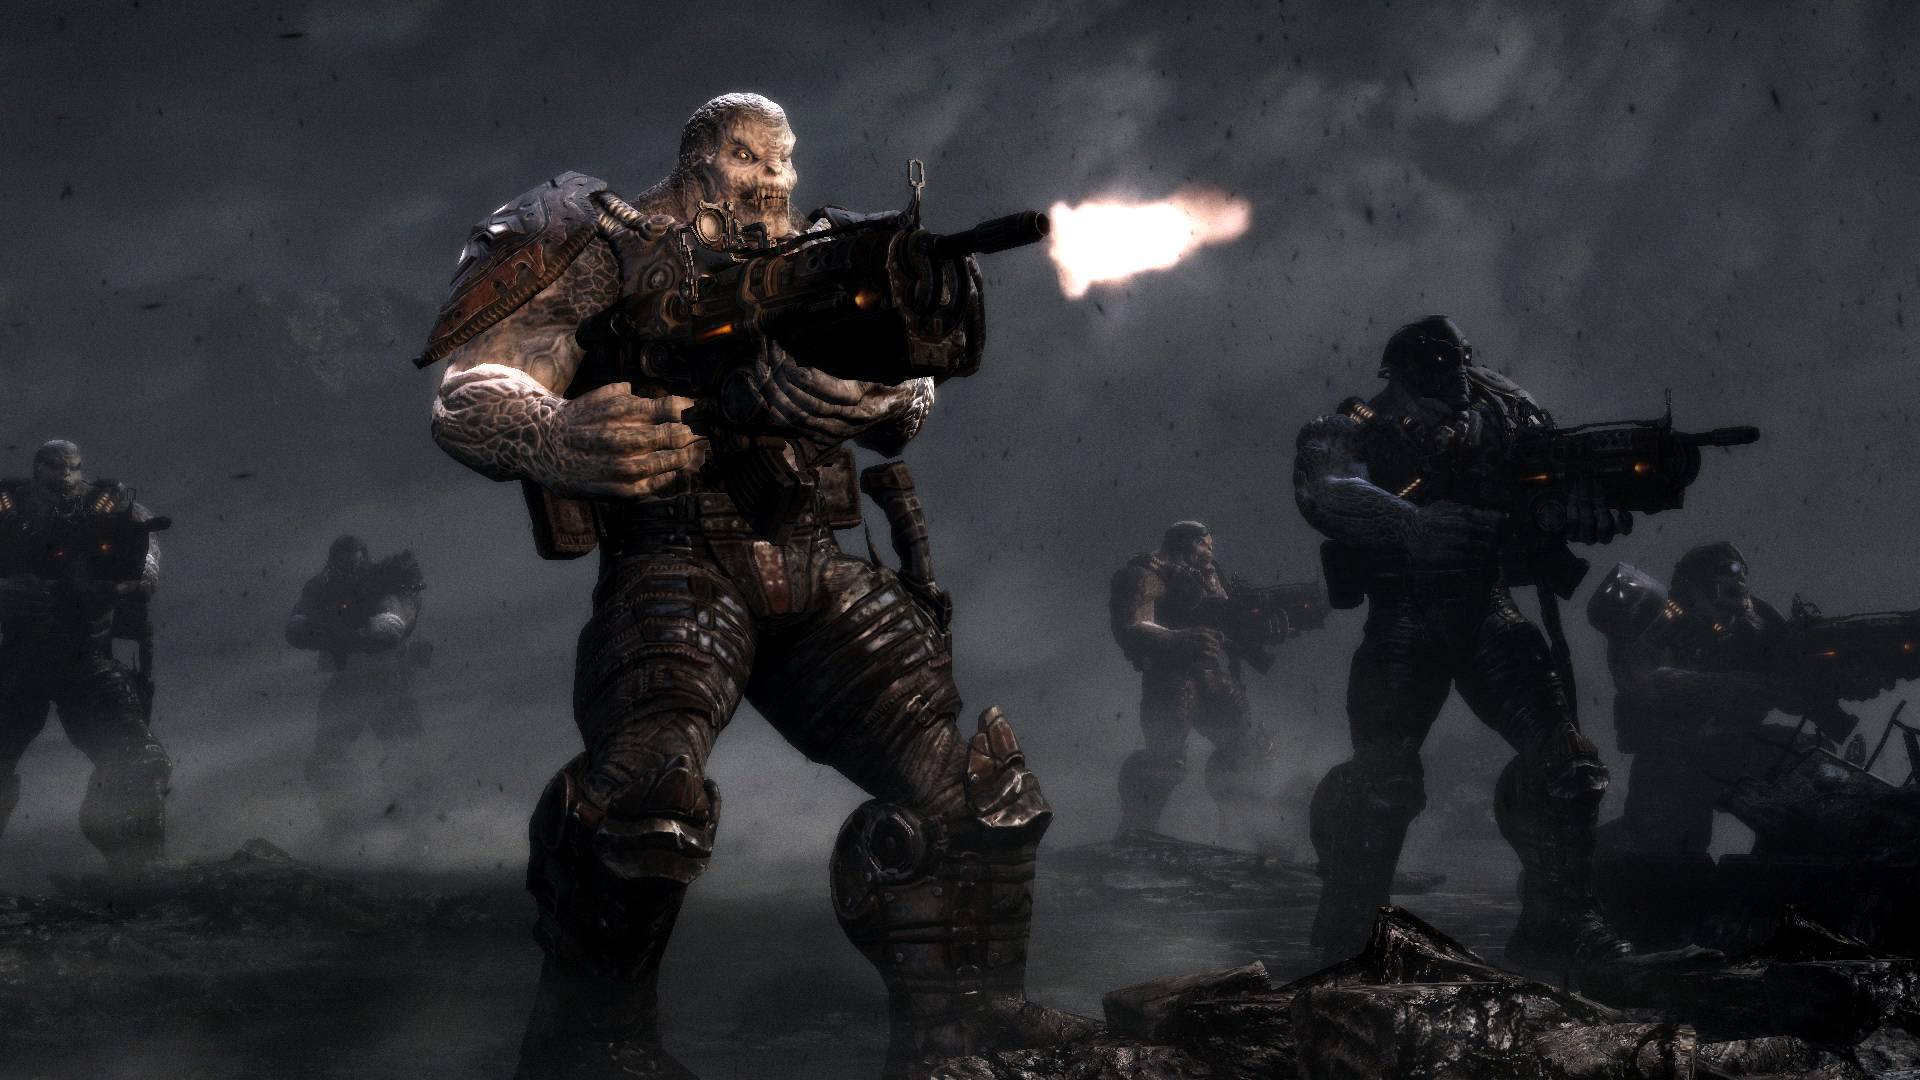 Even though I didn't think the story could get any deeper and more involved than Gears of War 2, but it certainly did.